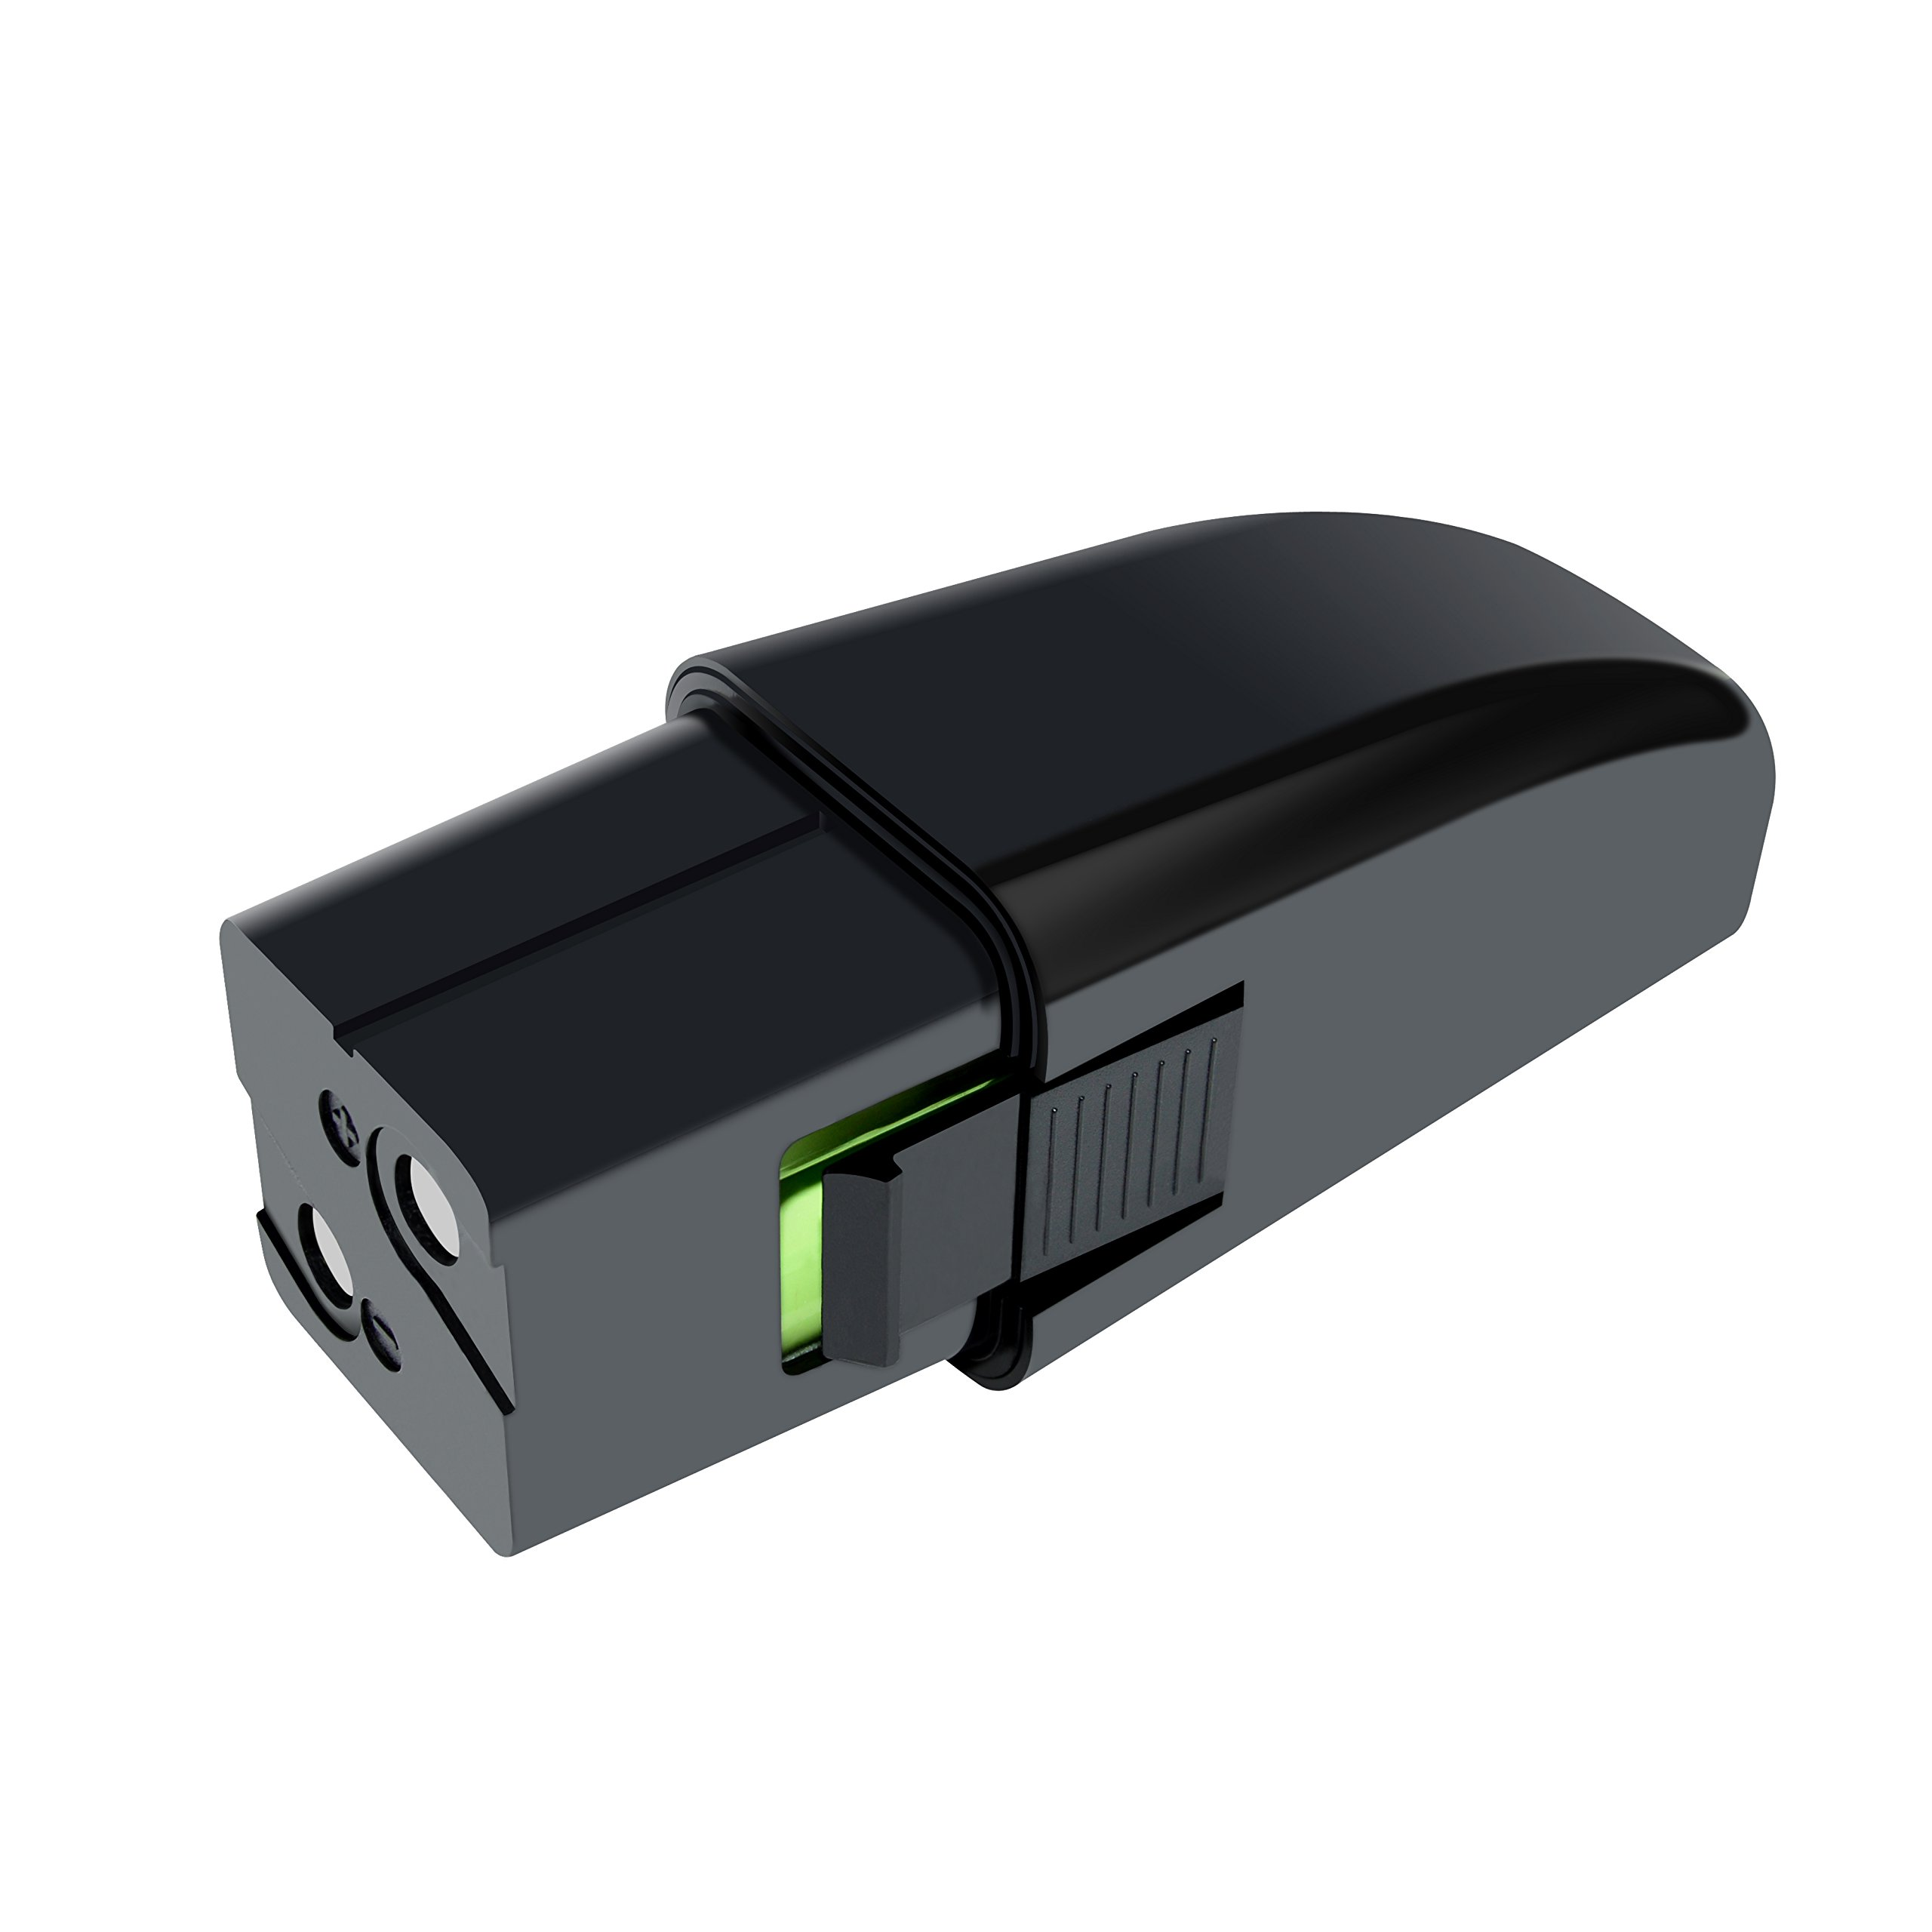 Rechargeable Battery For Original Cordless Swivel Sweeper Models by Bonacell